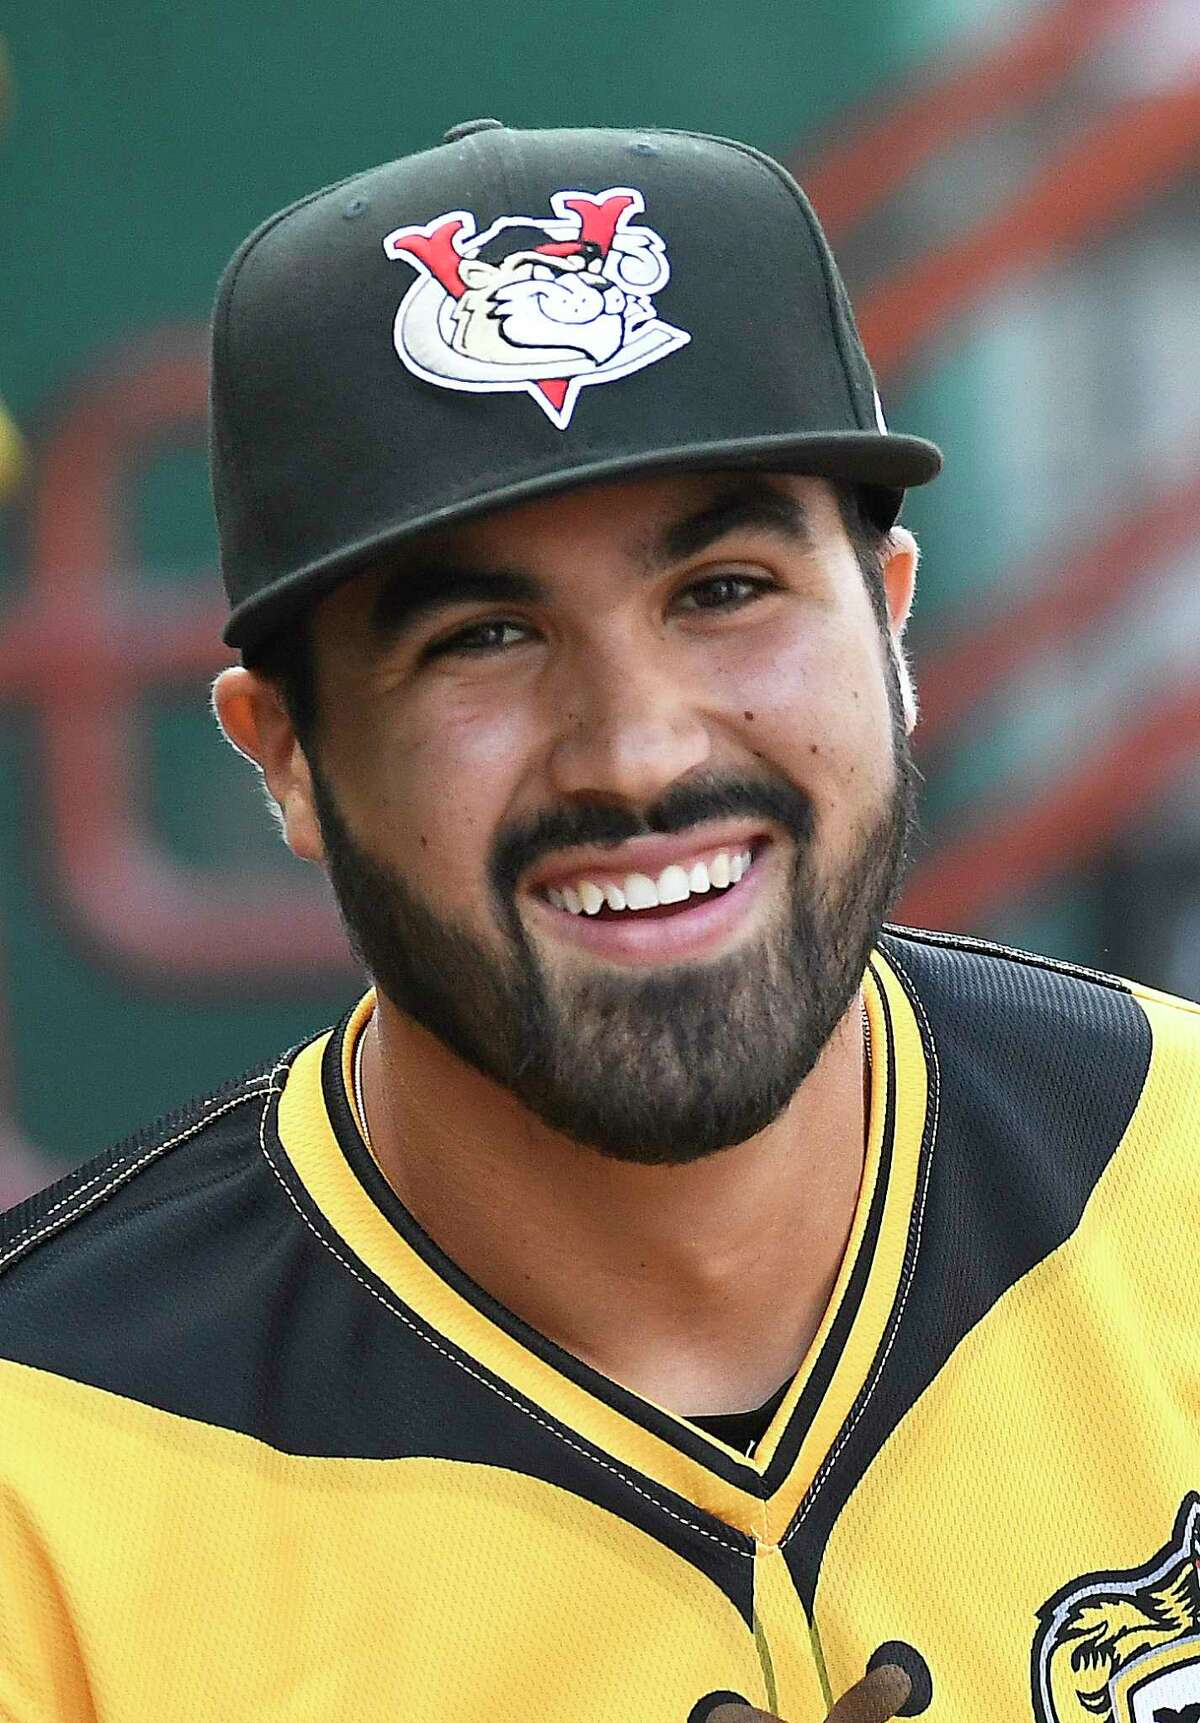 Tri-City ValleyCats manager Ozney Guillen (13) is seen in the dugout during a minor league baseball game against the State College Spikes Friday, July 12, 2019, in Troy, N.Y. (Hans Pennink / Special to the Times Union)